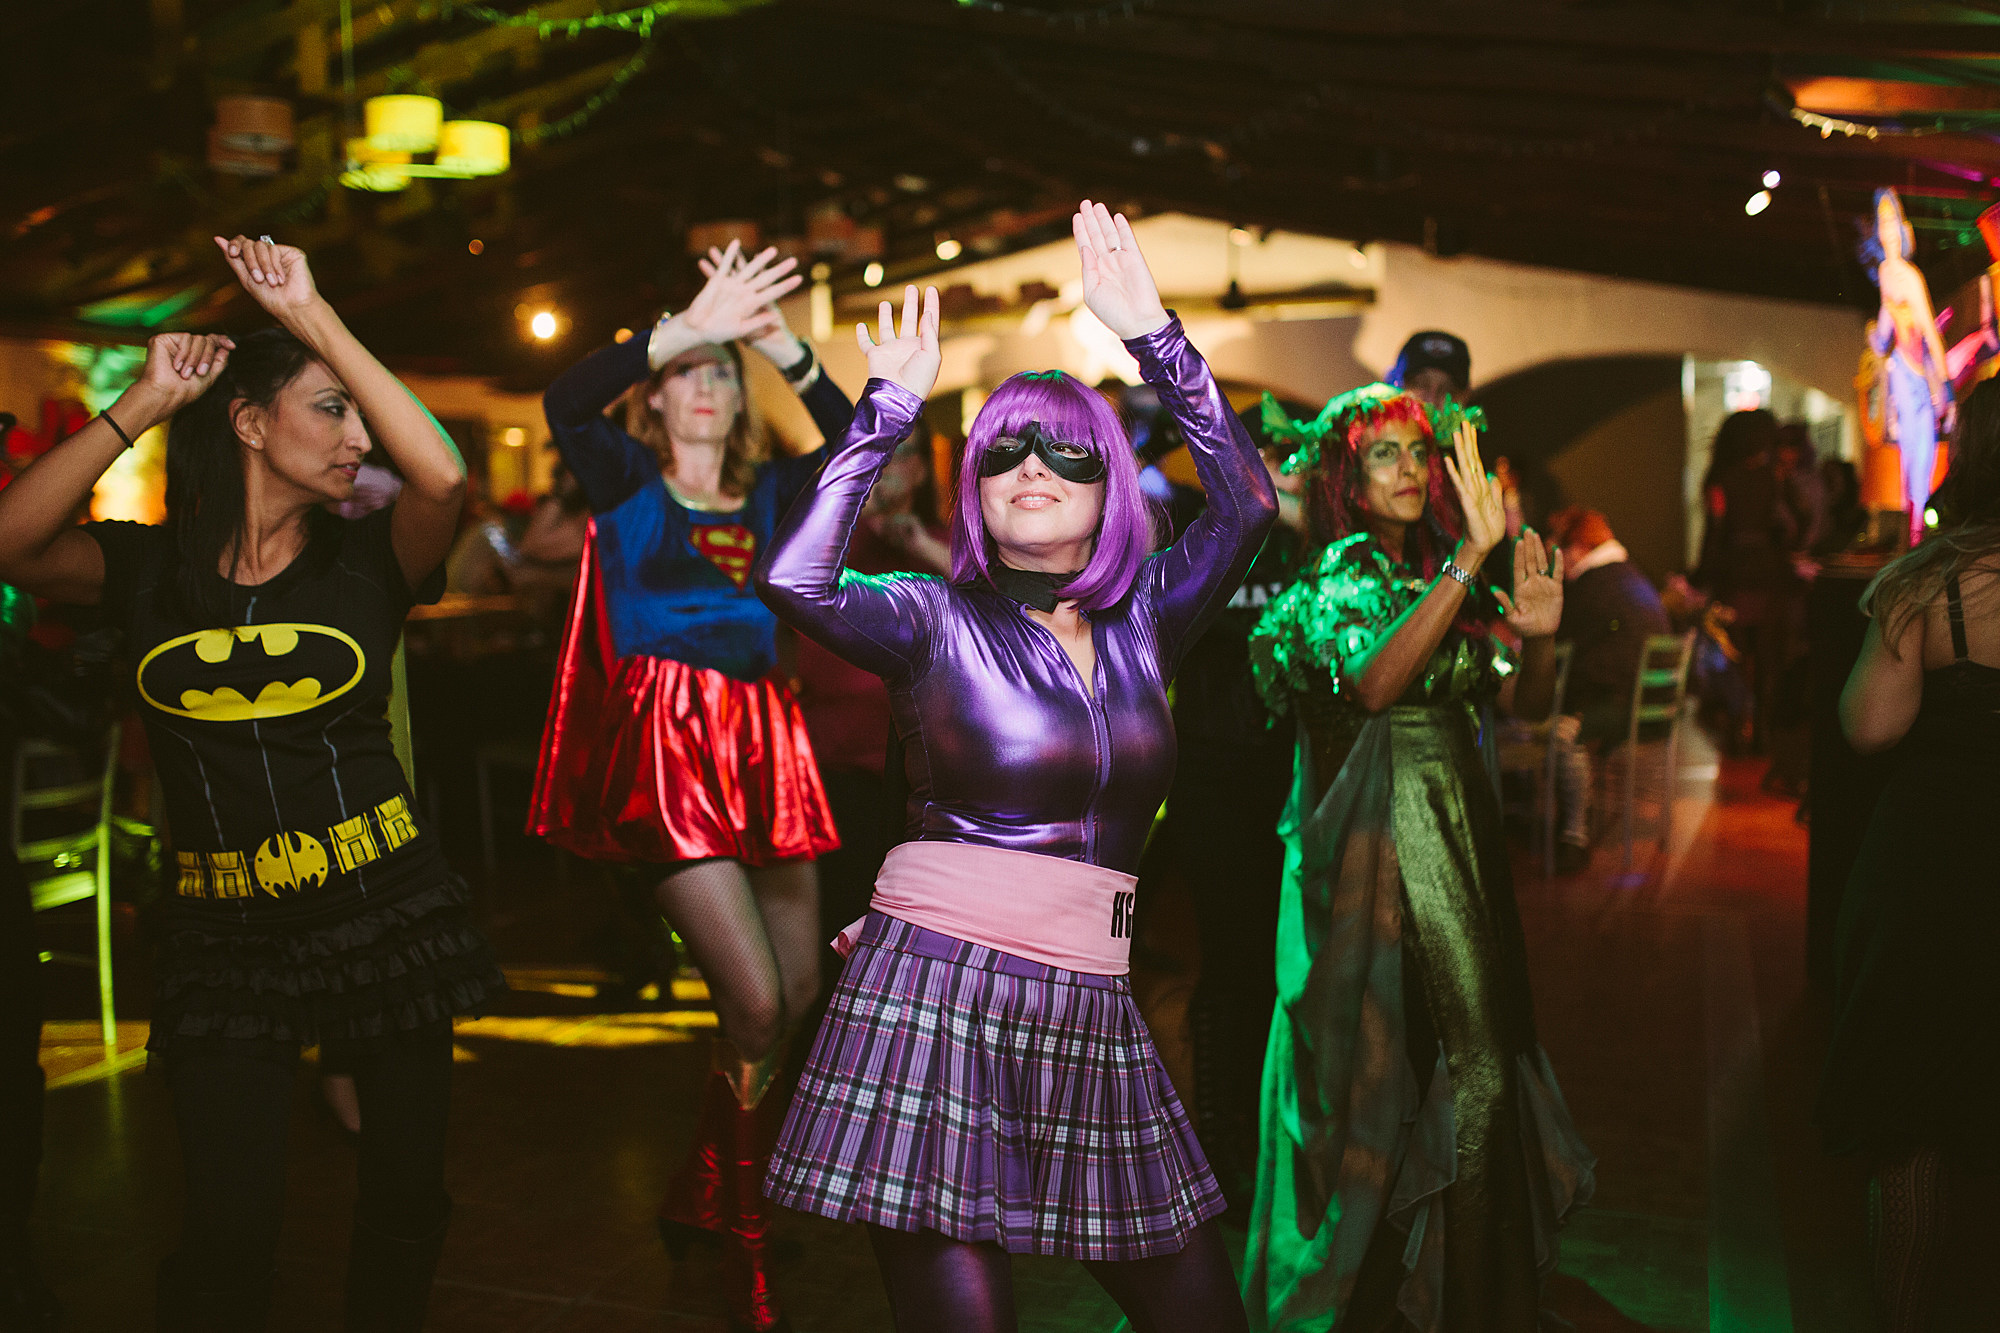 Party Like A Rock Star This Halloween At The Monster's Ball